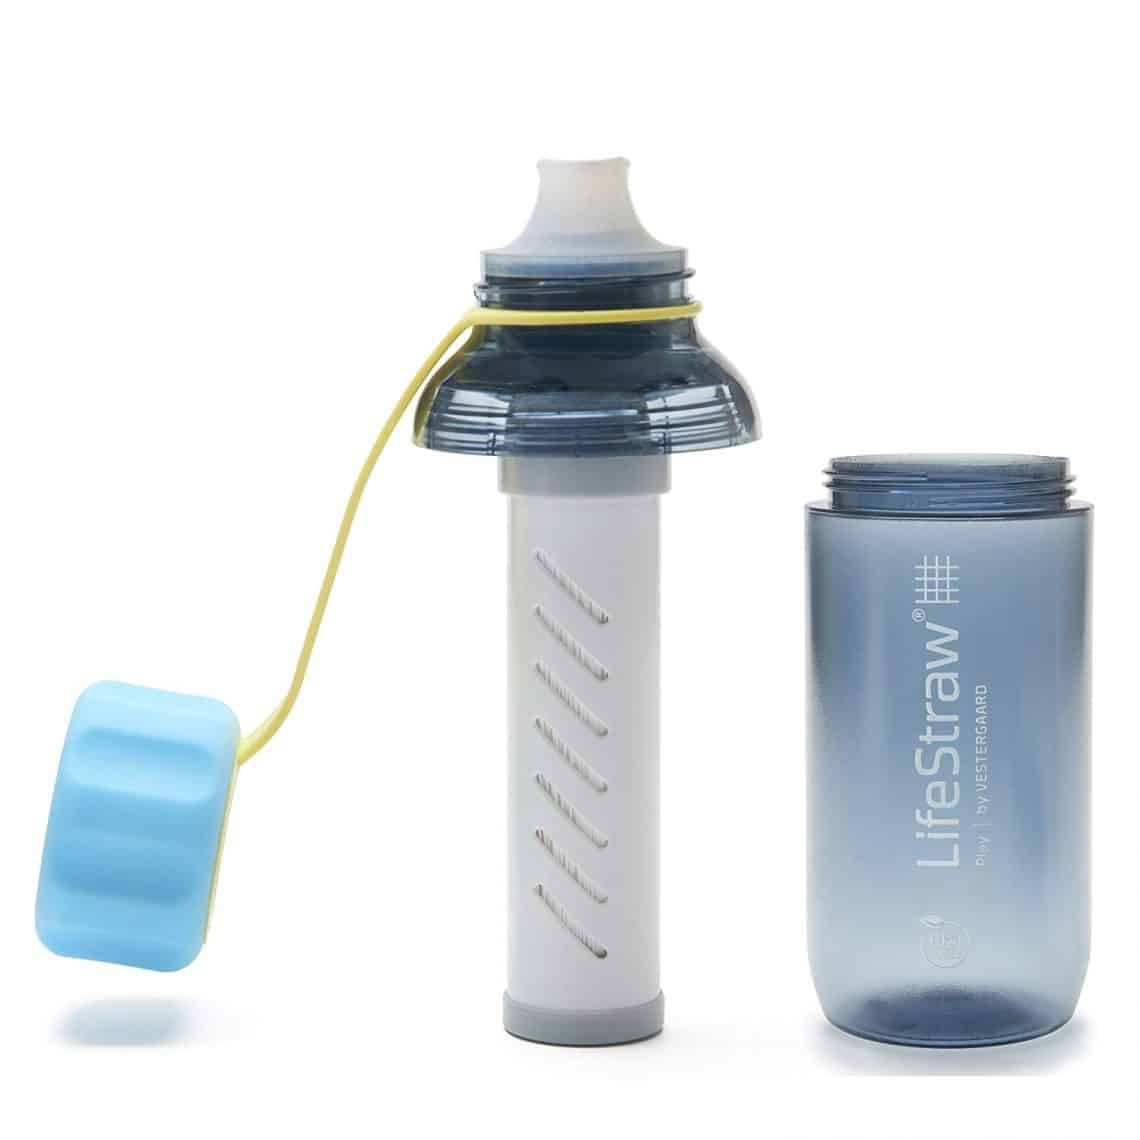 lifestraw play 1140x1140 - 2018 Holiday Gift Guide for Kids